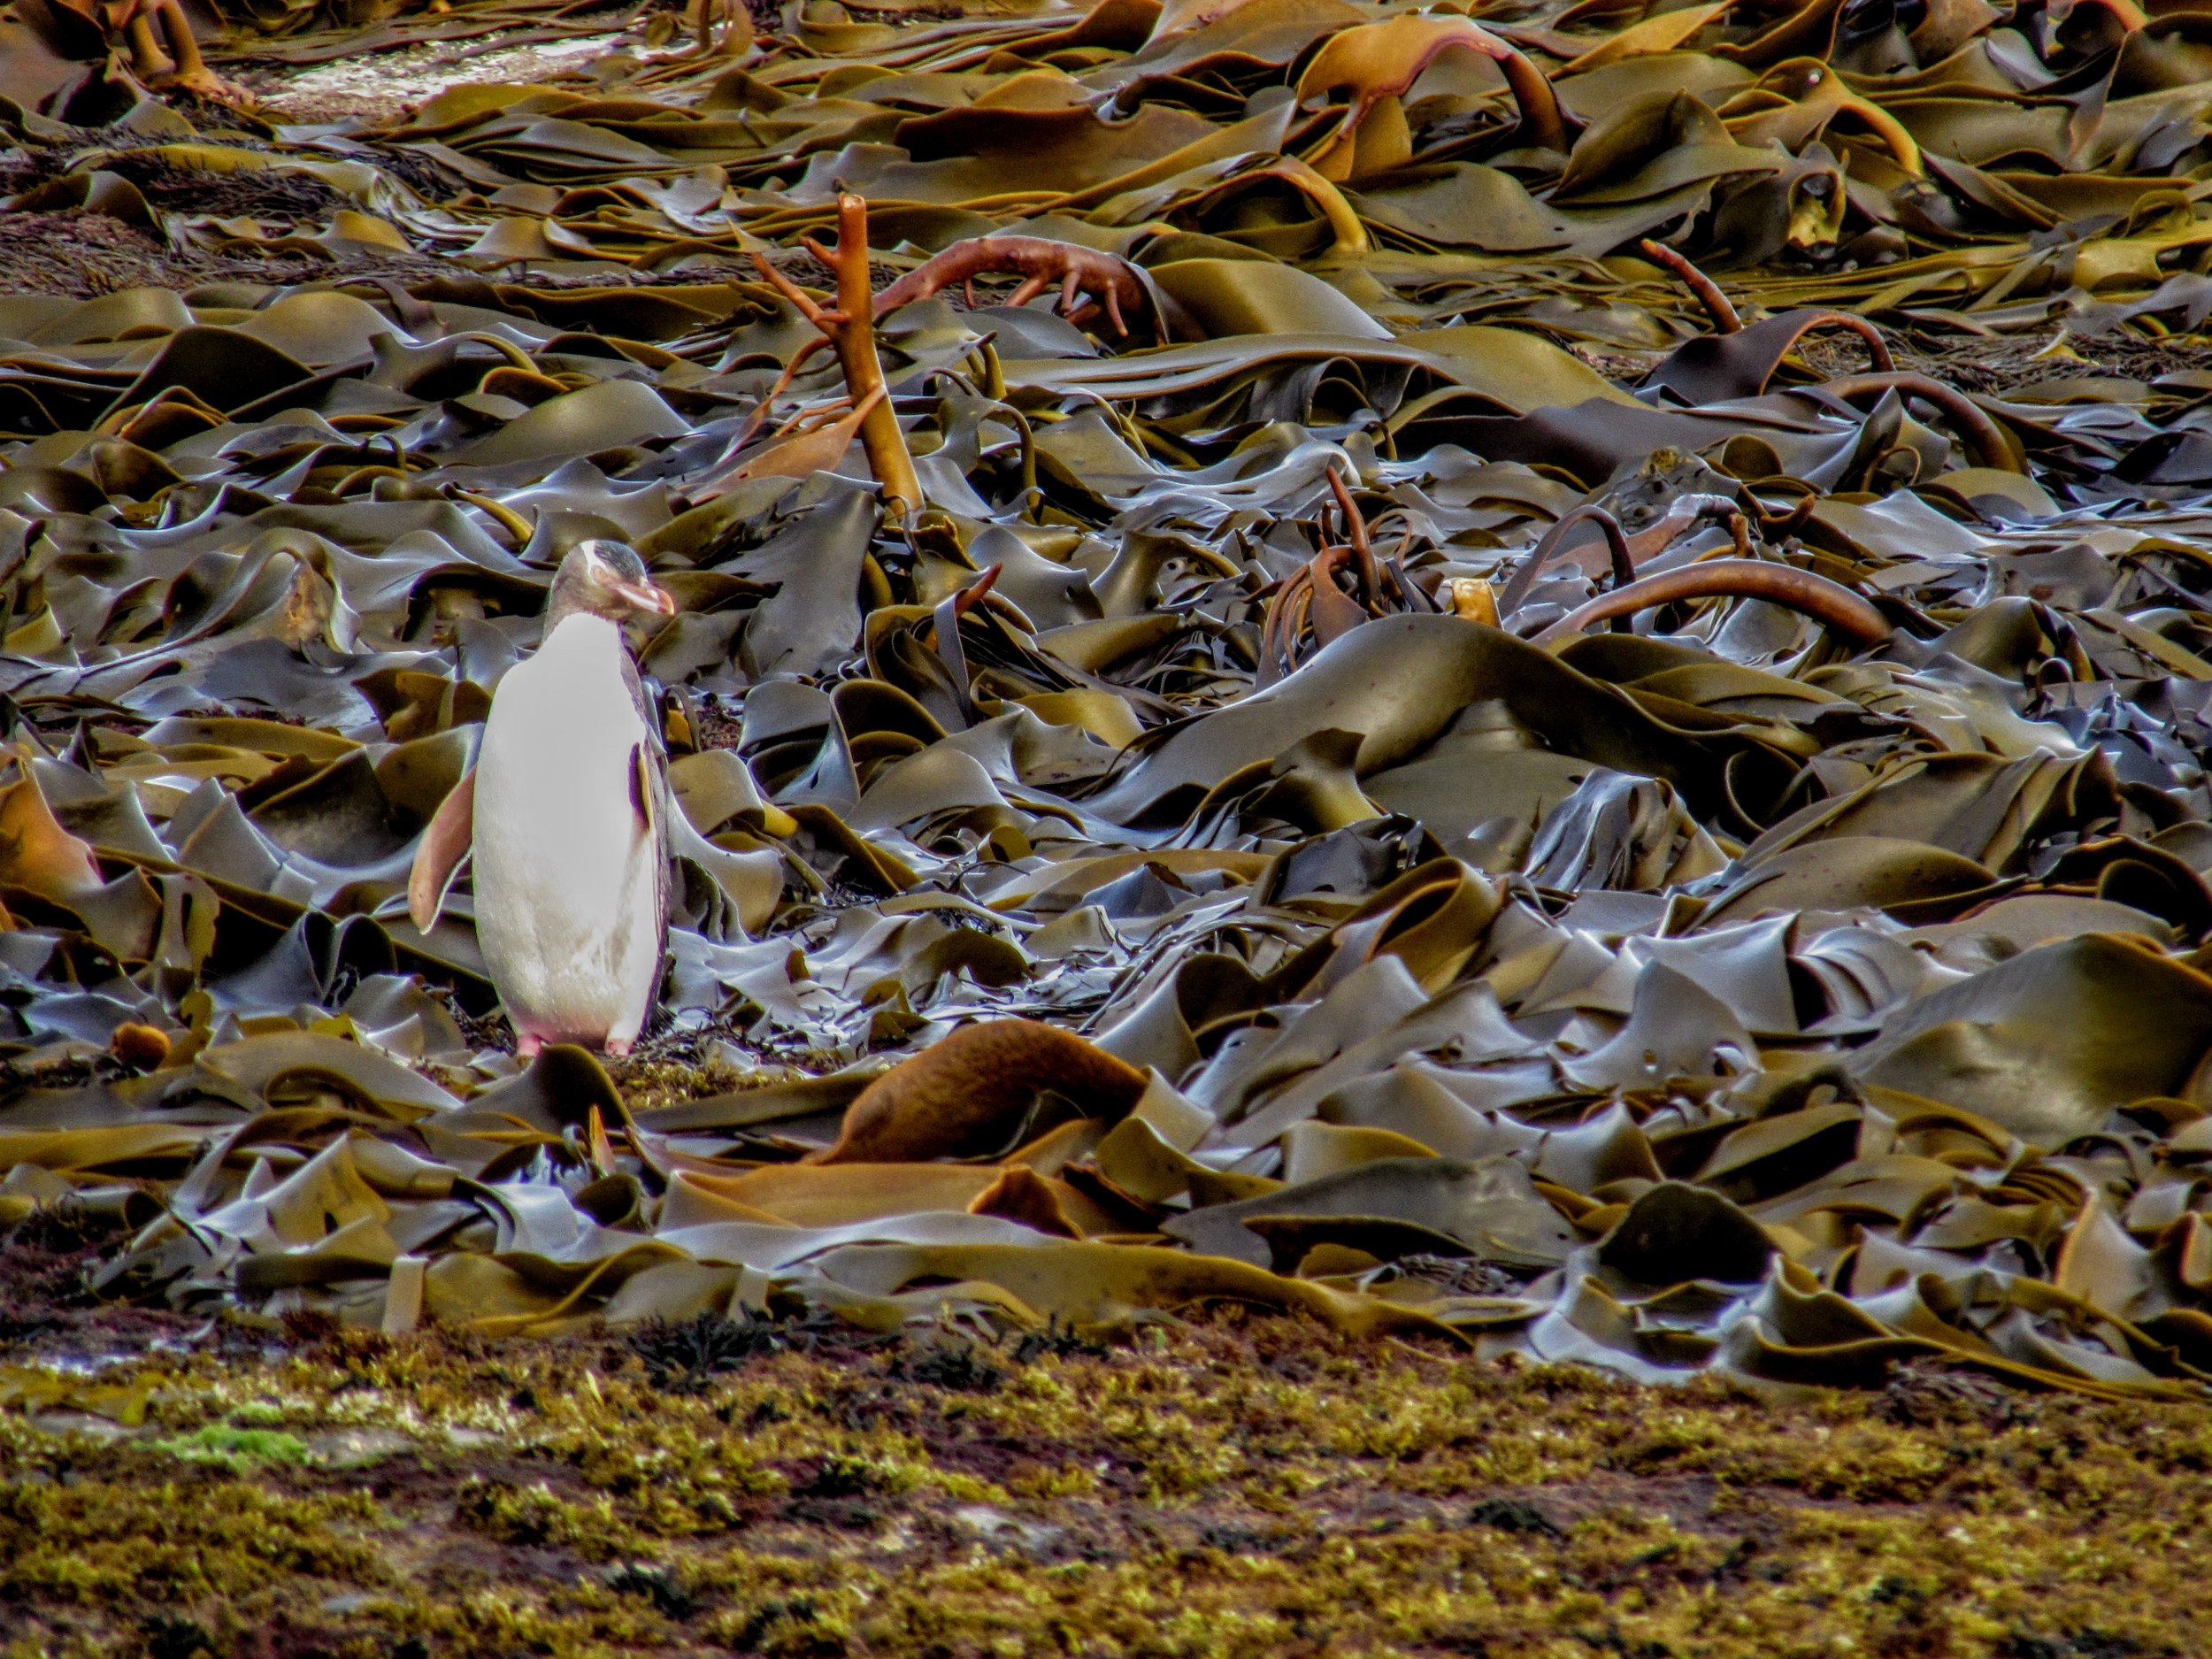 Curio Bay, NZ is home to a population of rare yellow-eyed penguins